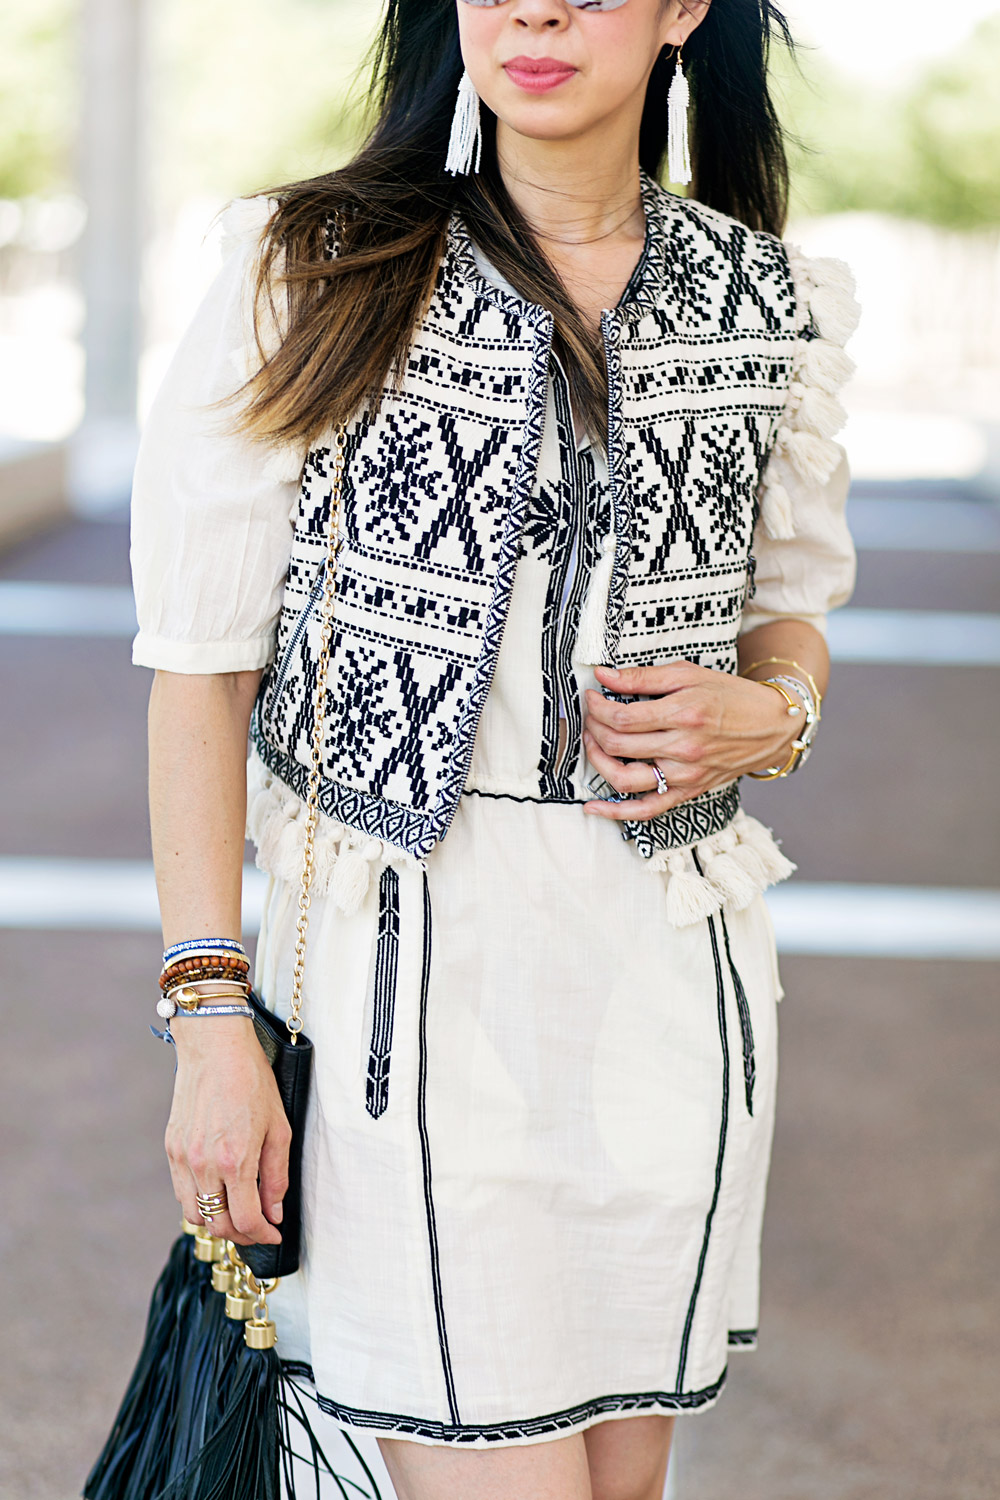 sea new york tassel statement vest, isabel marant rebel dress joss sandals